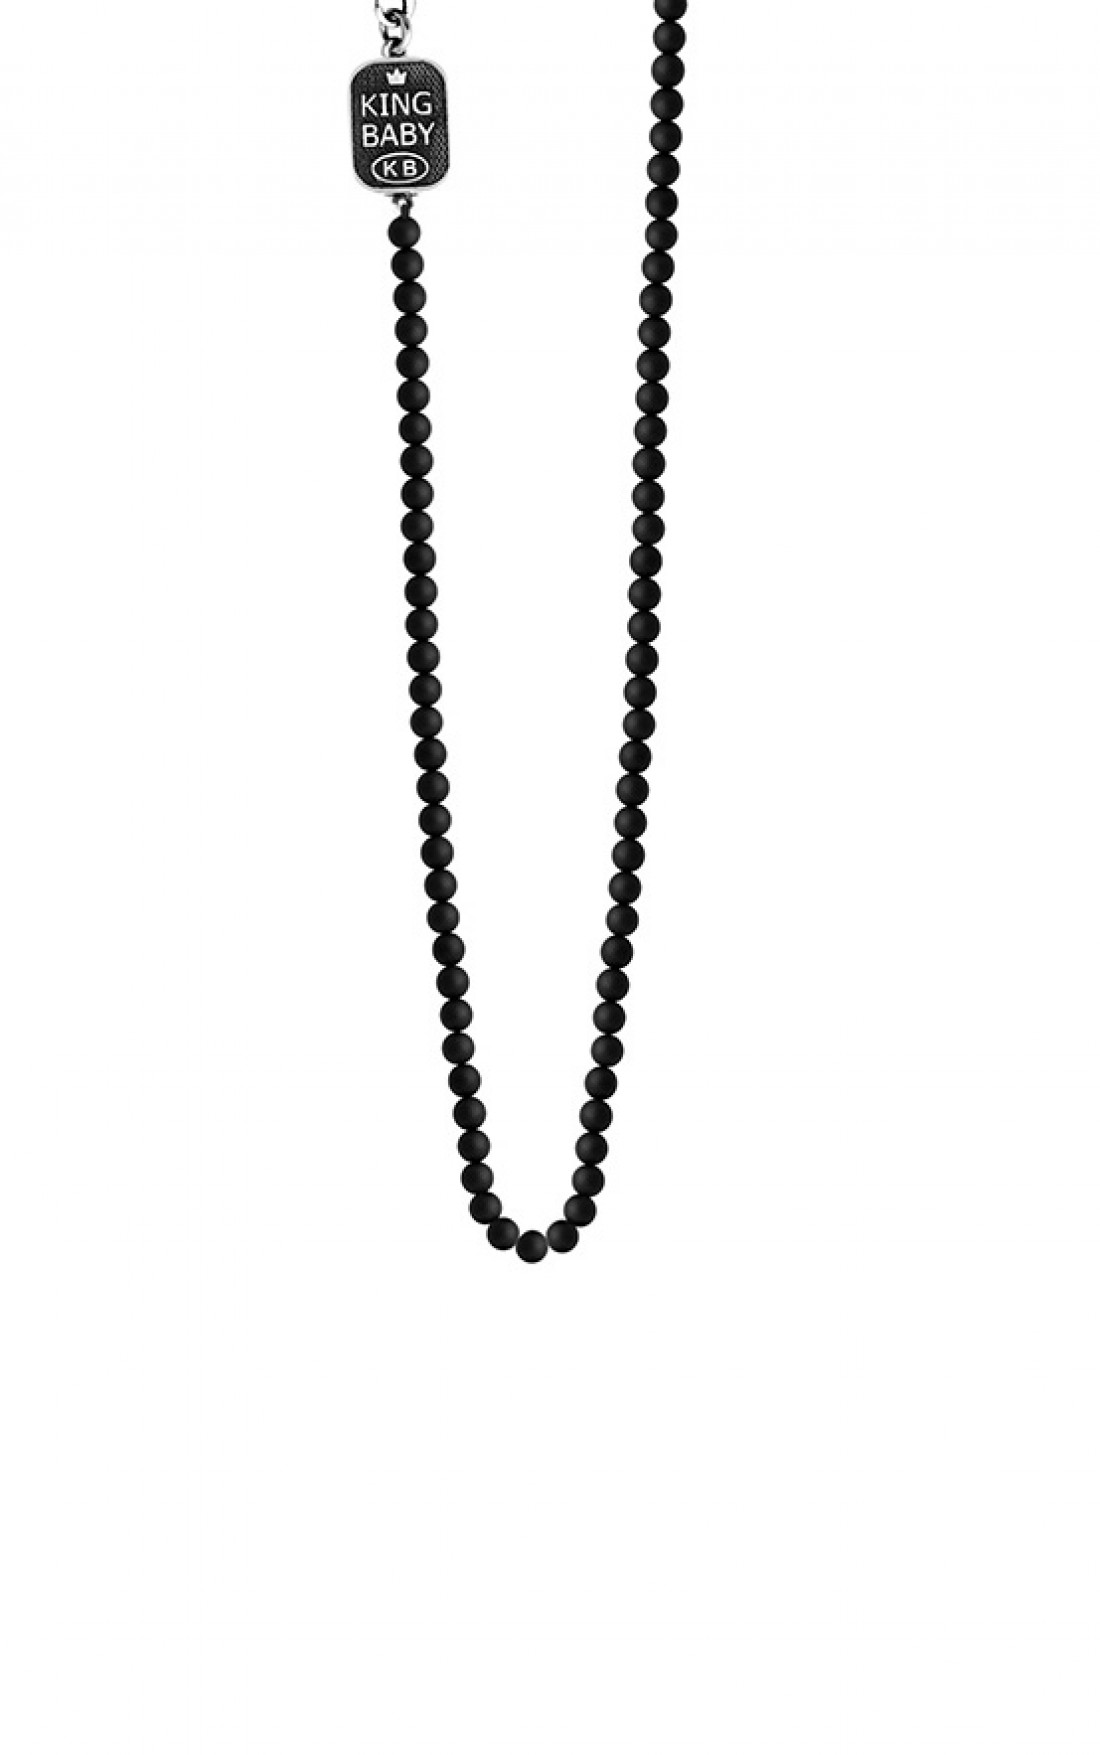 King Baby - Onyx Bead Necklace (K55-5300)